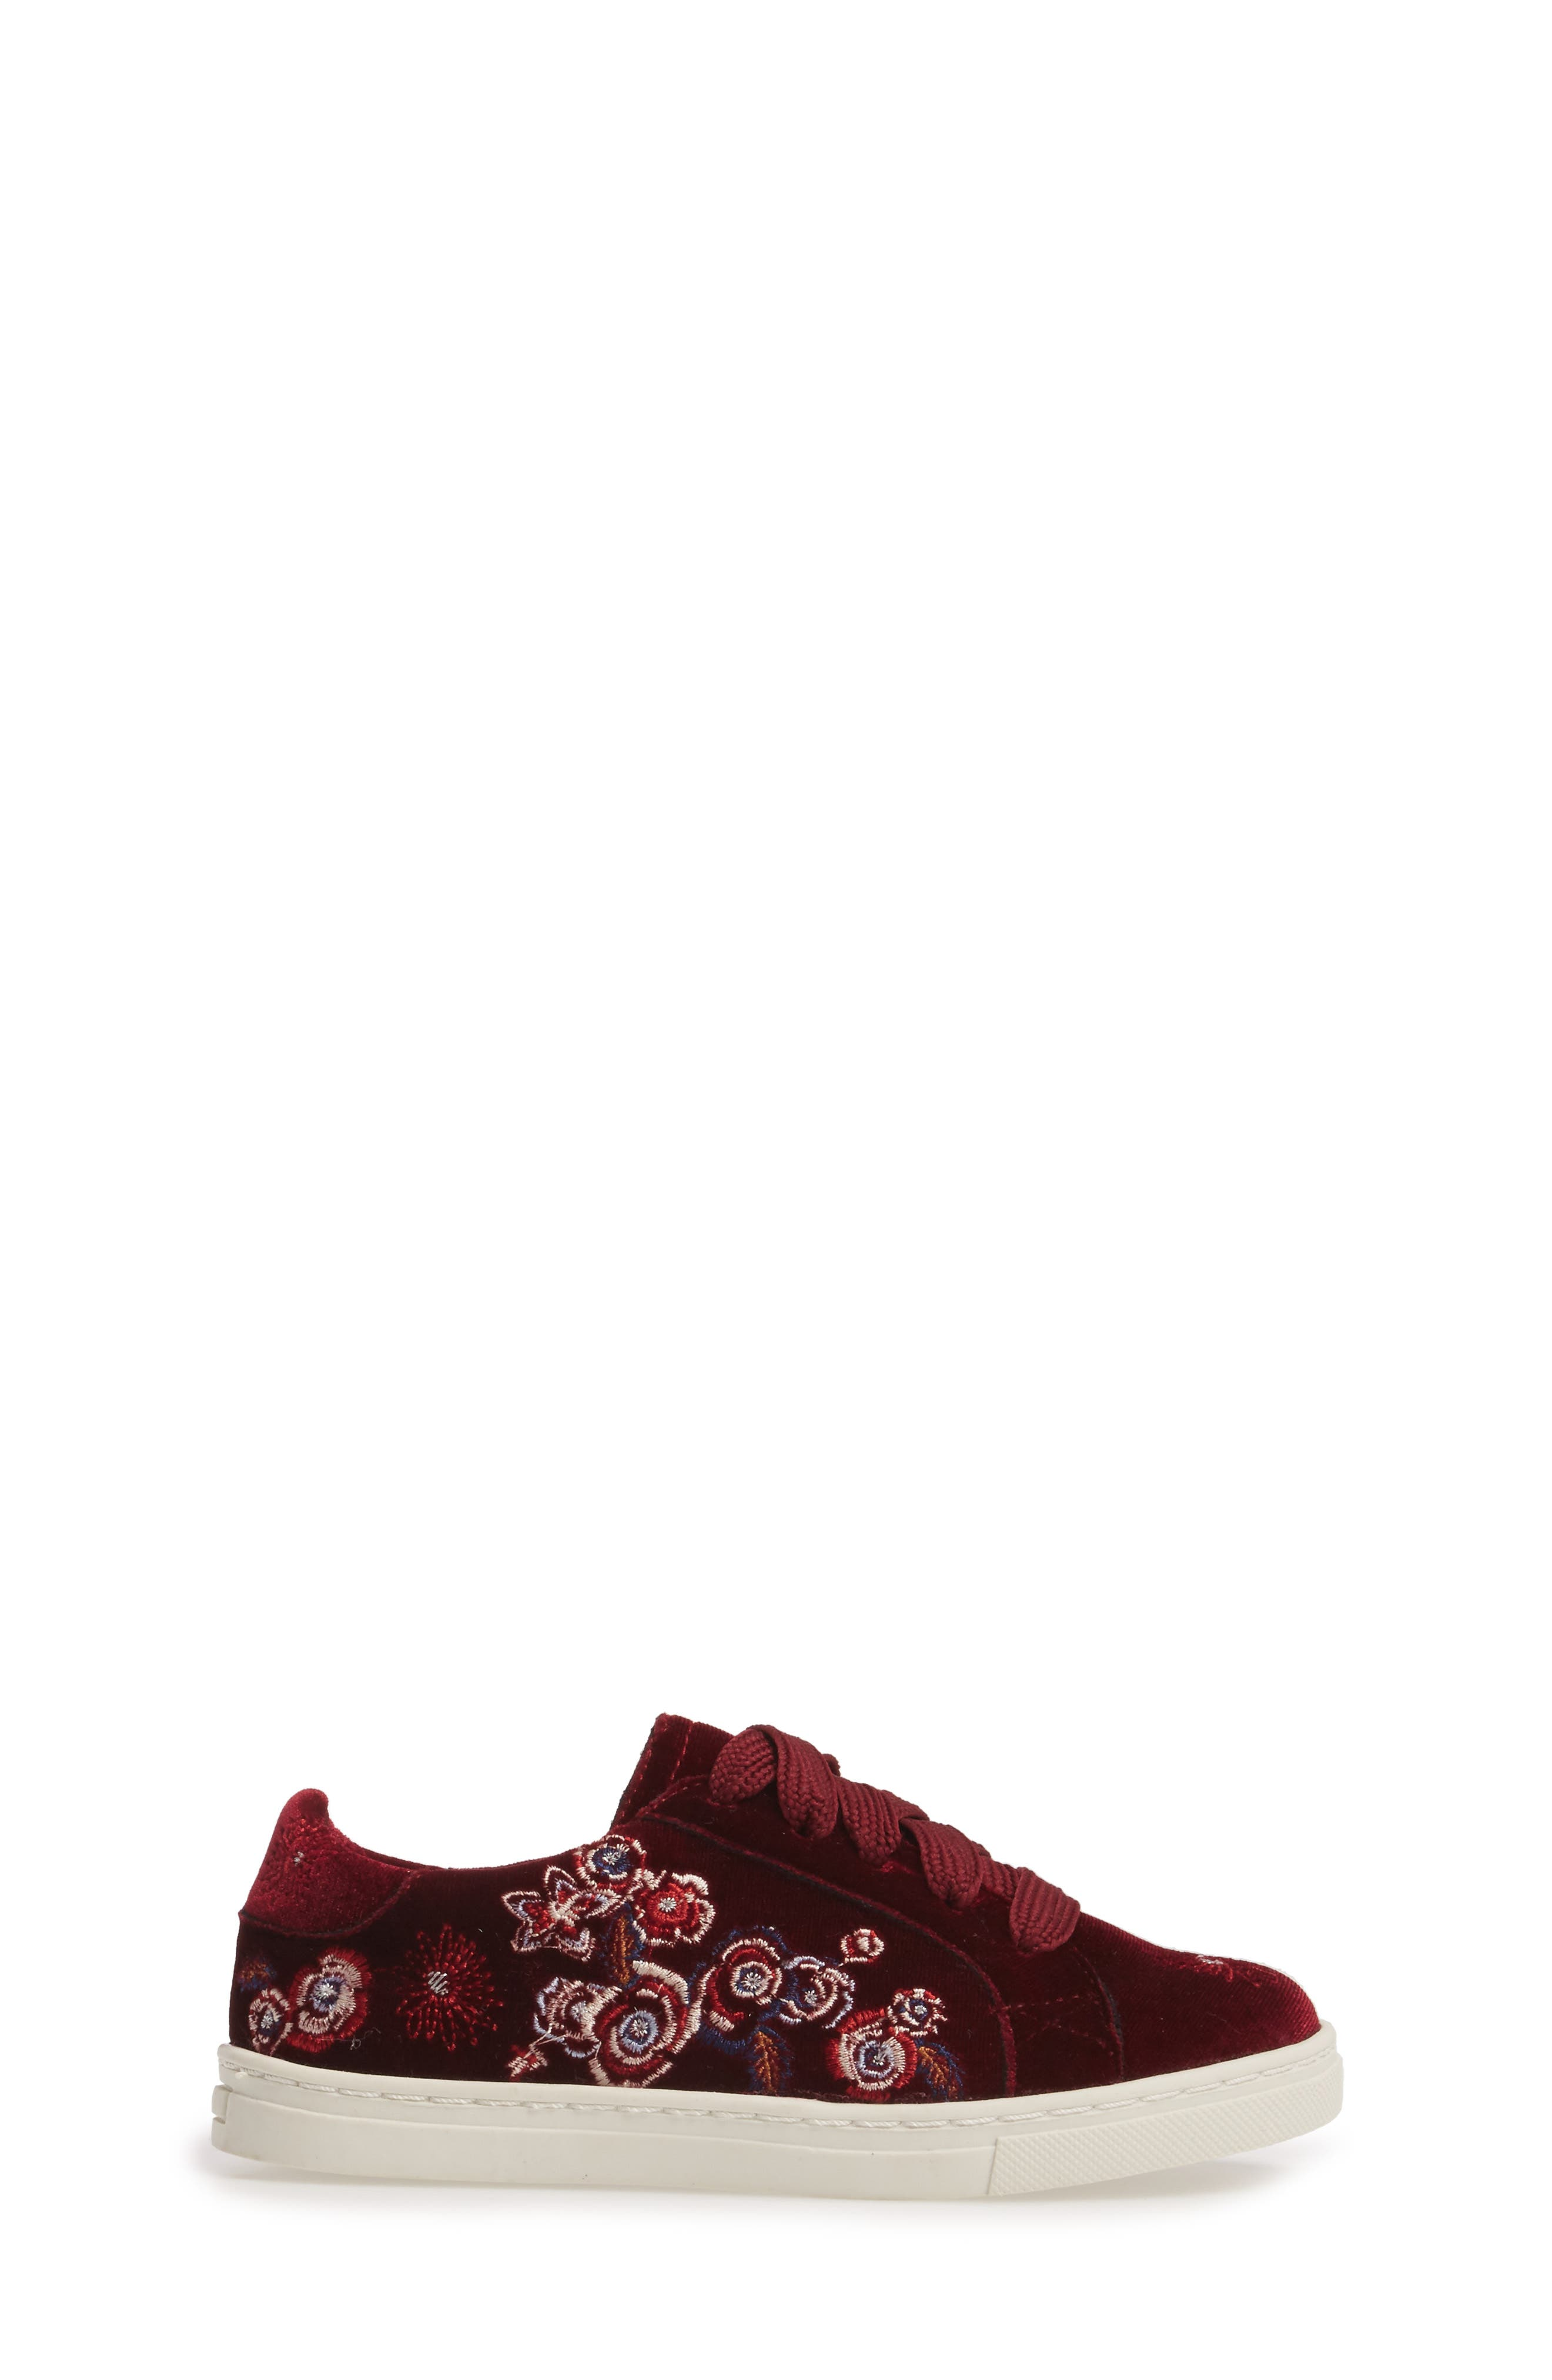 Zolly Floral Embroidered Sneaker,                             Alternate thumbnail 3, color,                             602